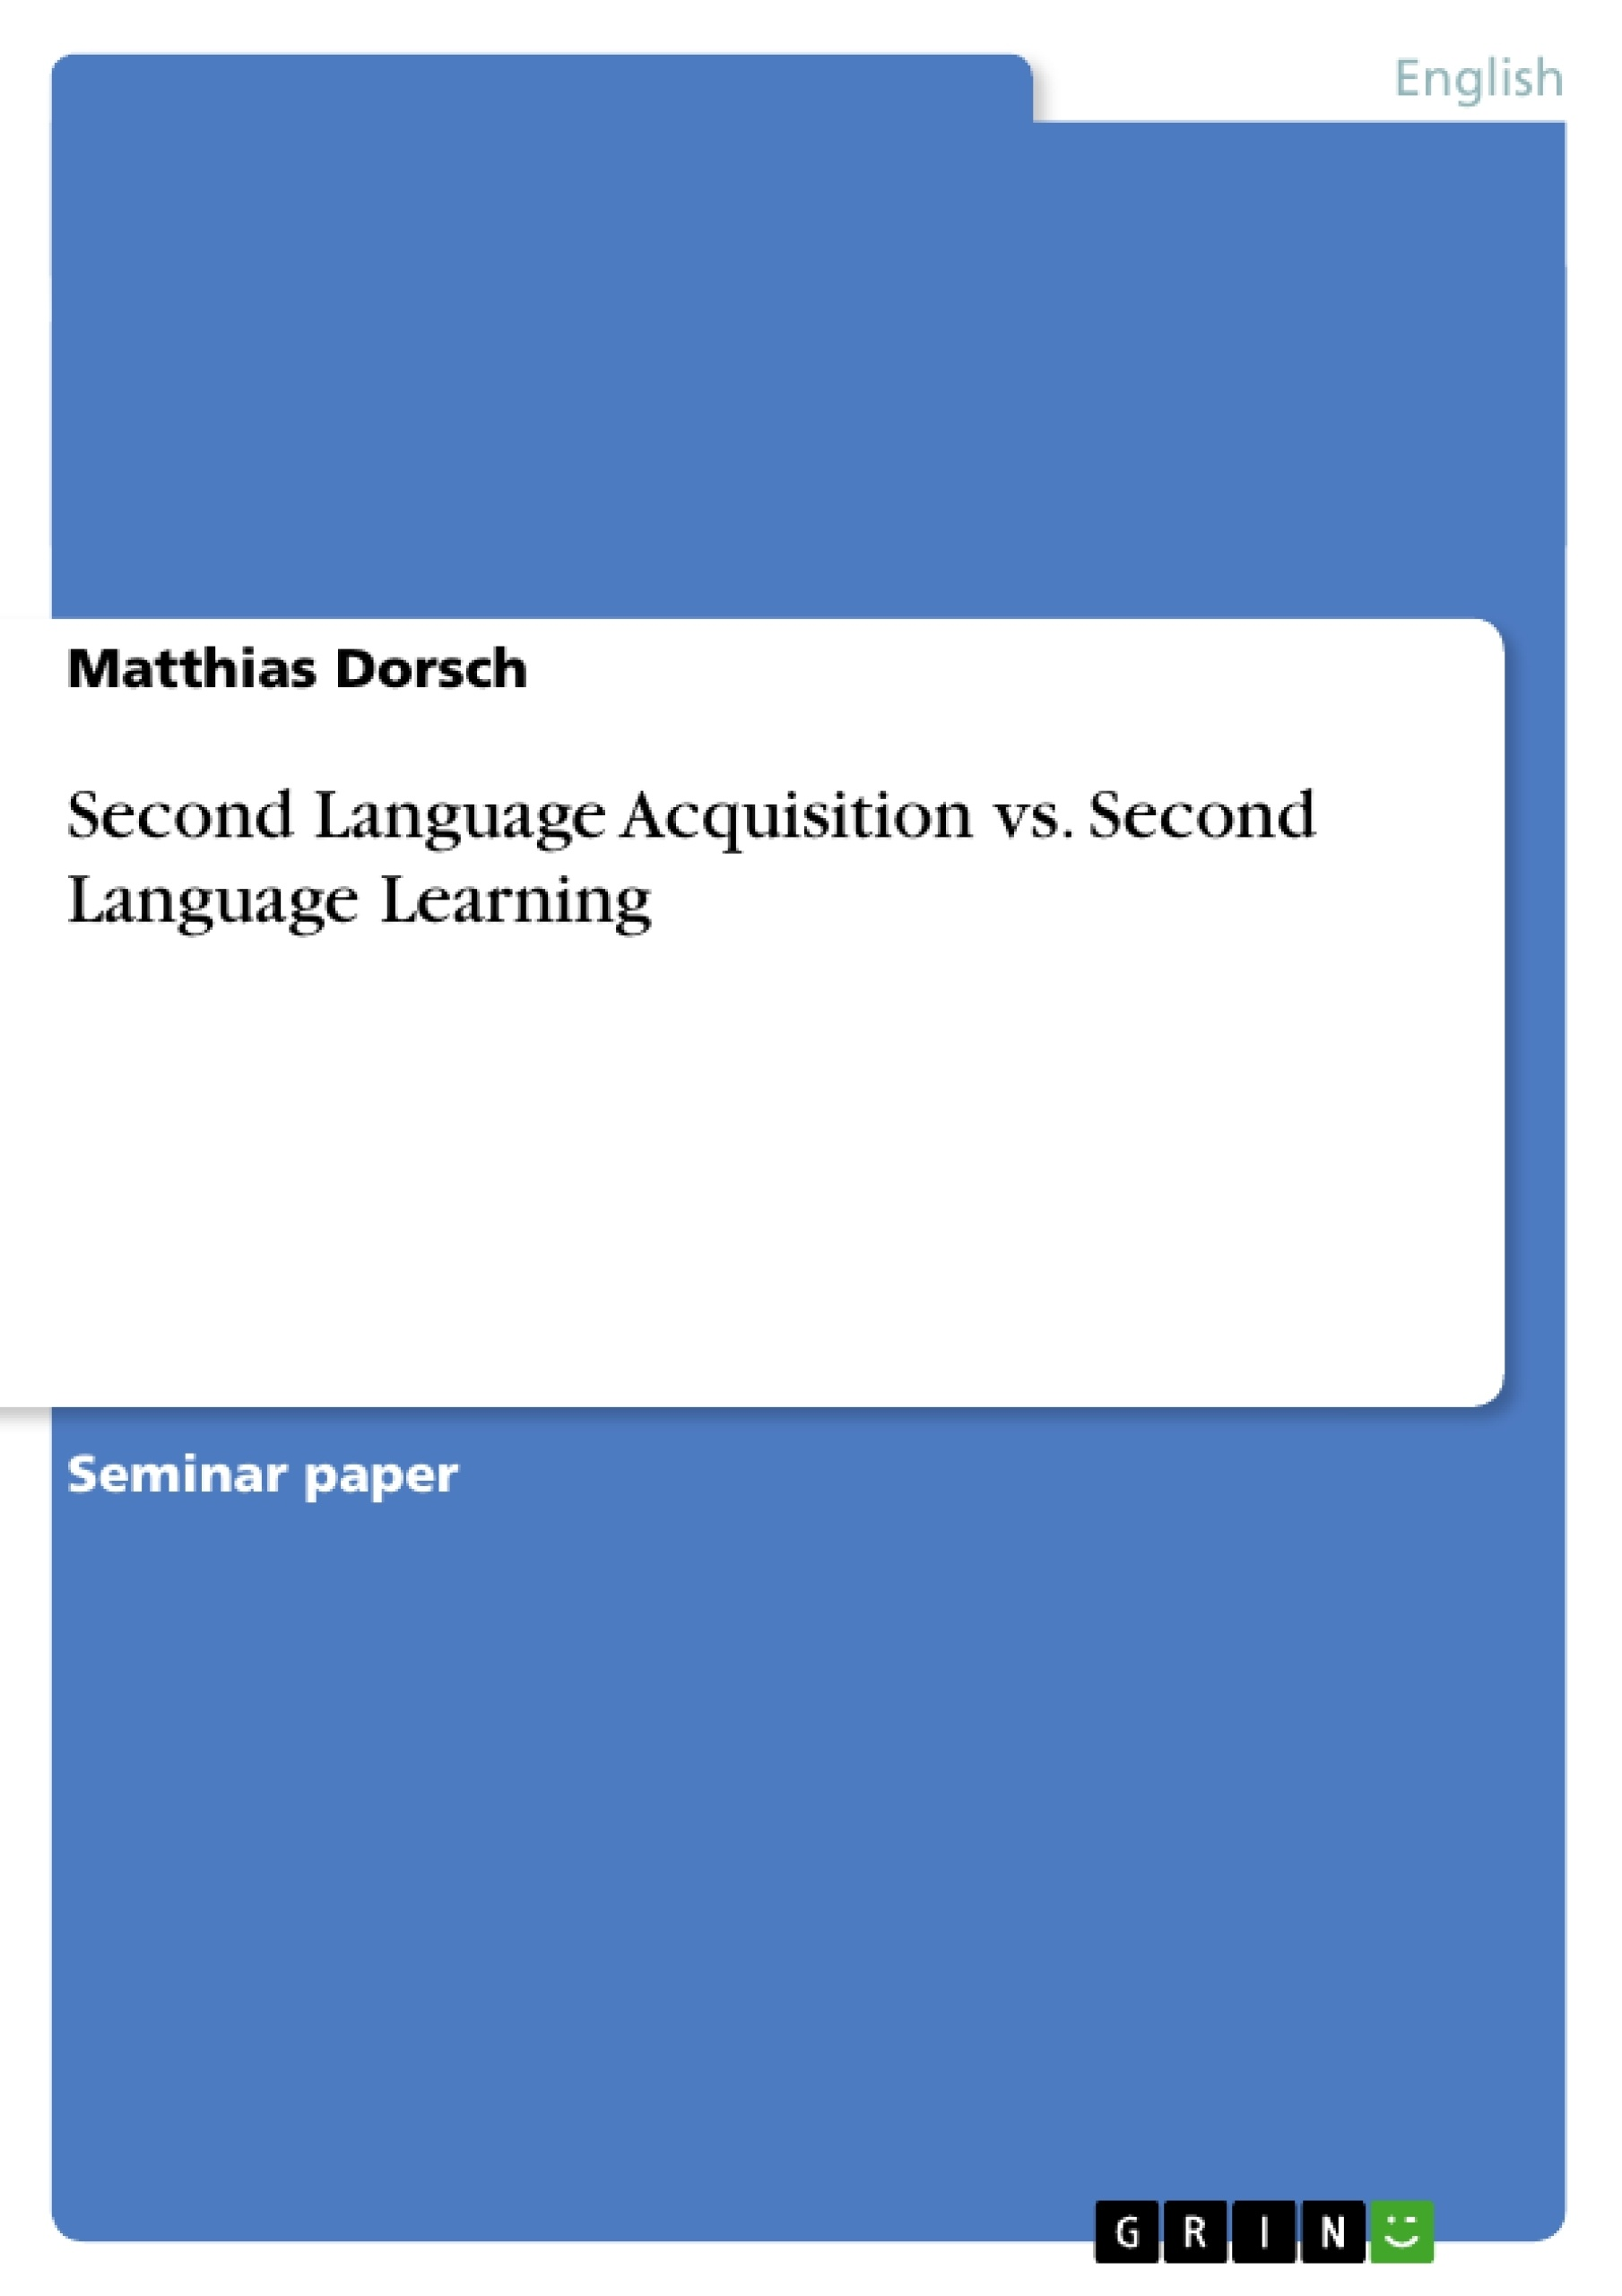 Title: Second Language Acquisition vs. Second Language Learning